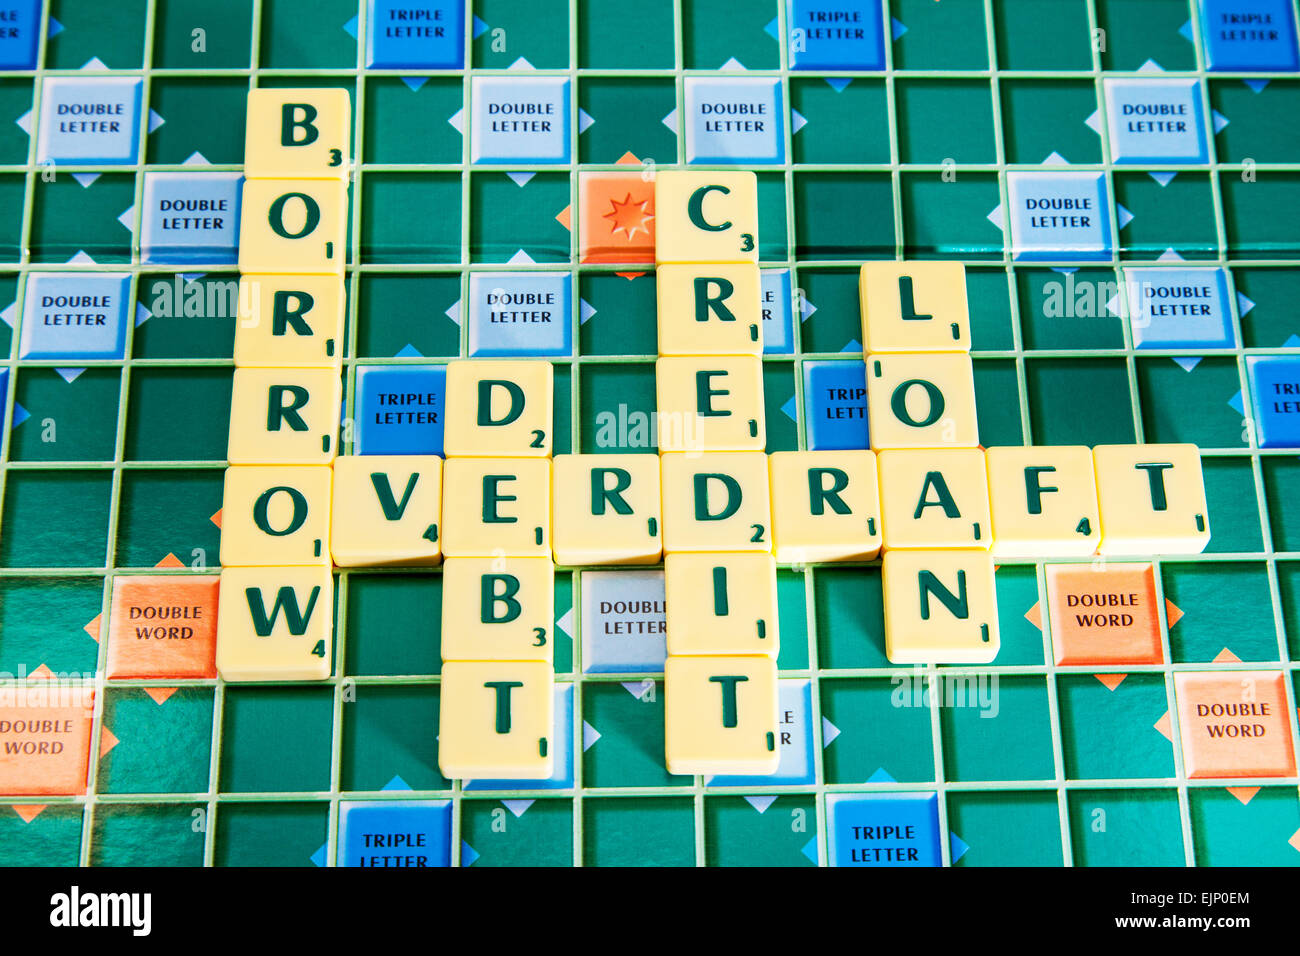 credit loan overdraft borrow debt borrowing debts loans cards card words using scrabble tiles to illustrate spelling - Stock Image